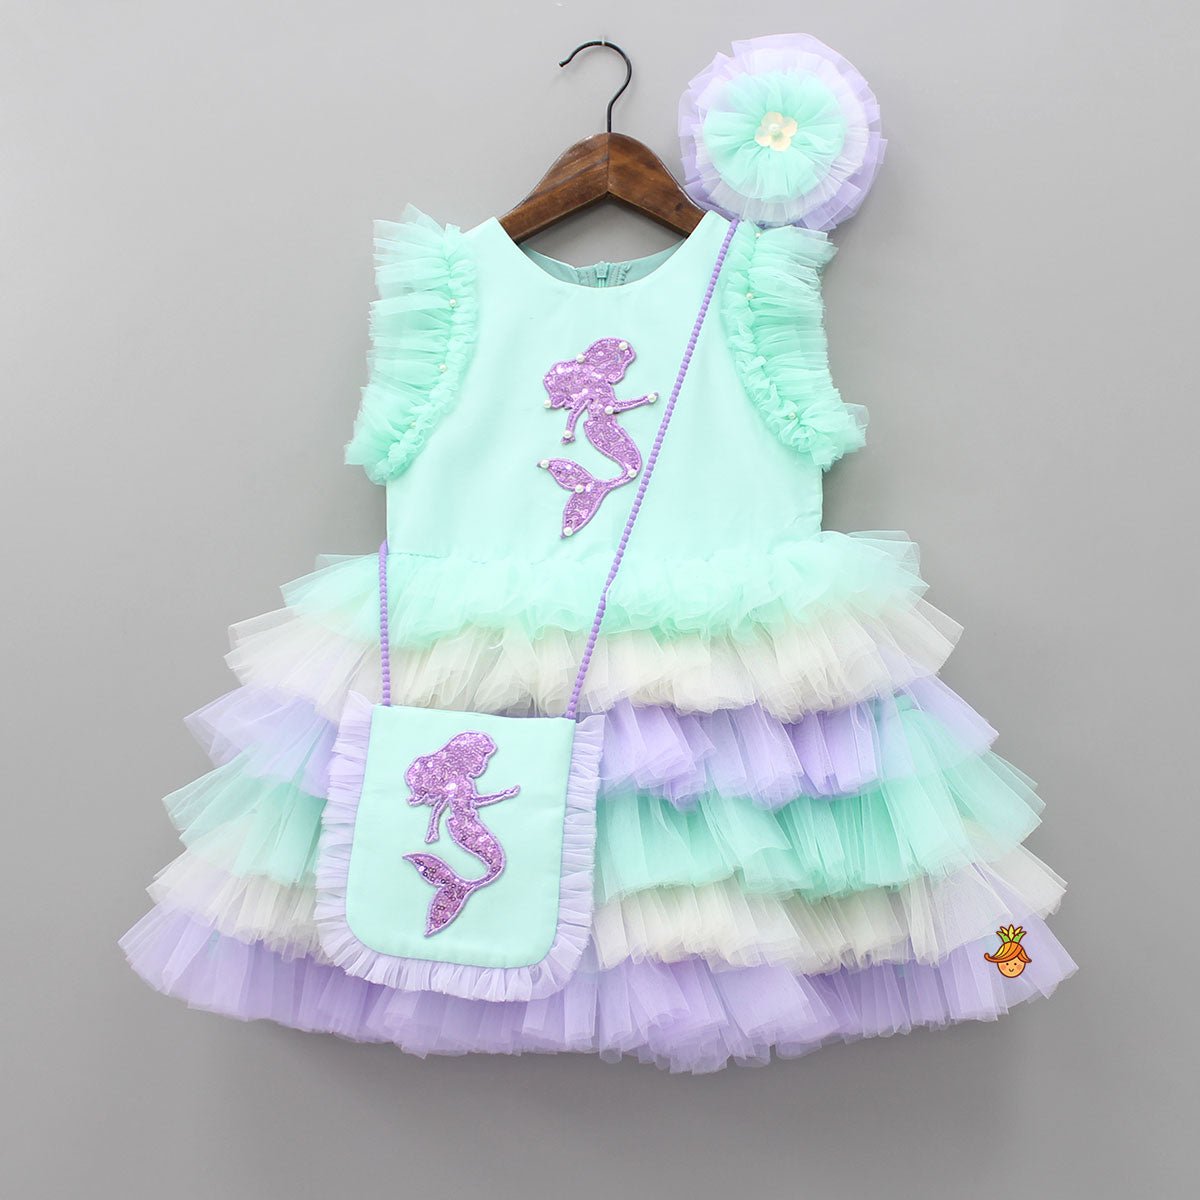 Pre Order: Sequin Mermaid Patch Dress With Sling Bag And Hair Clip